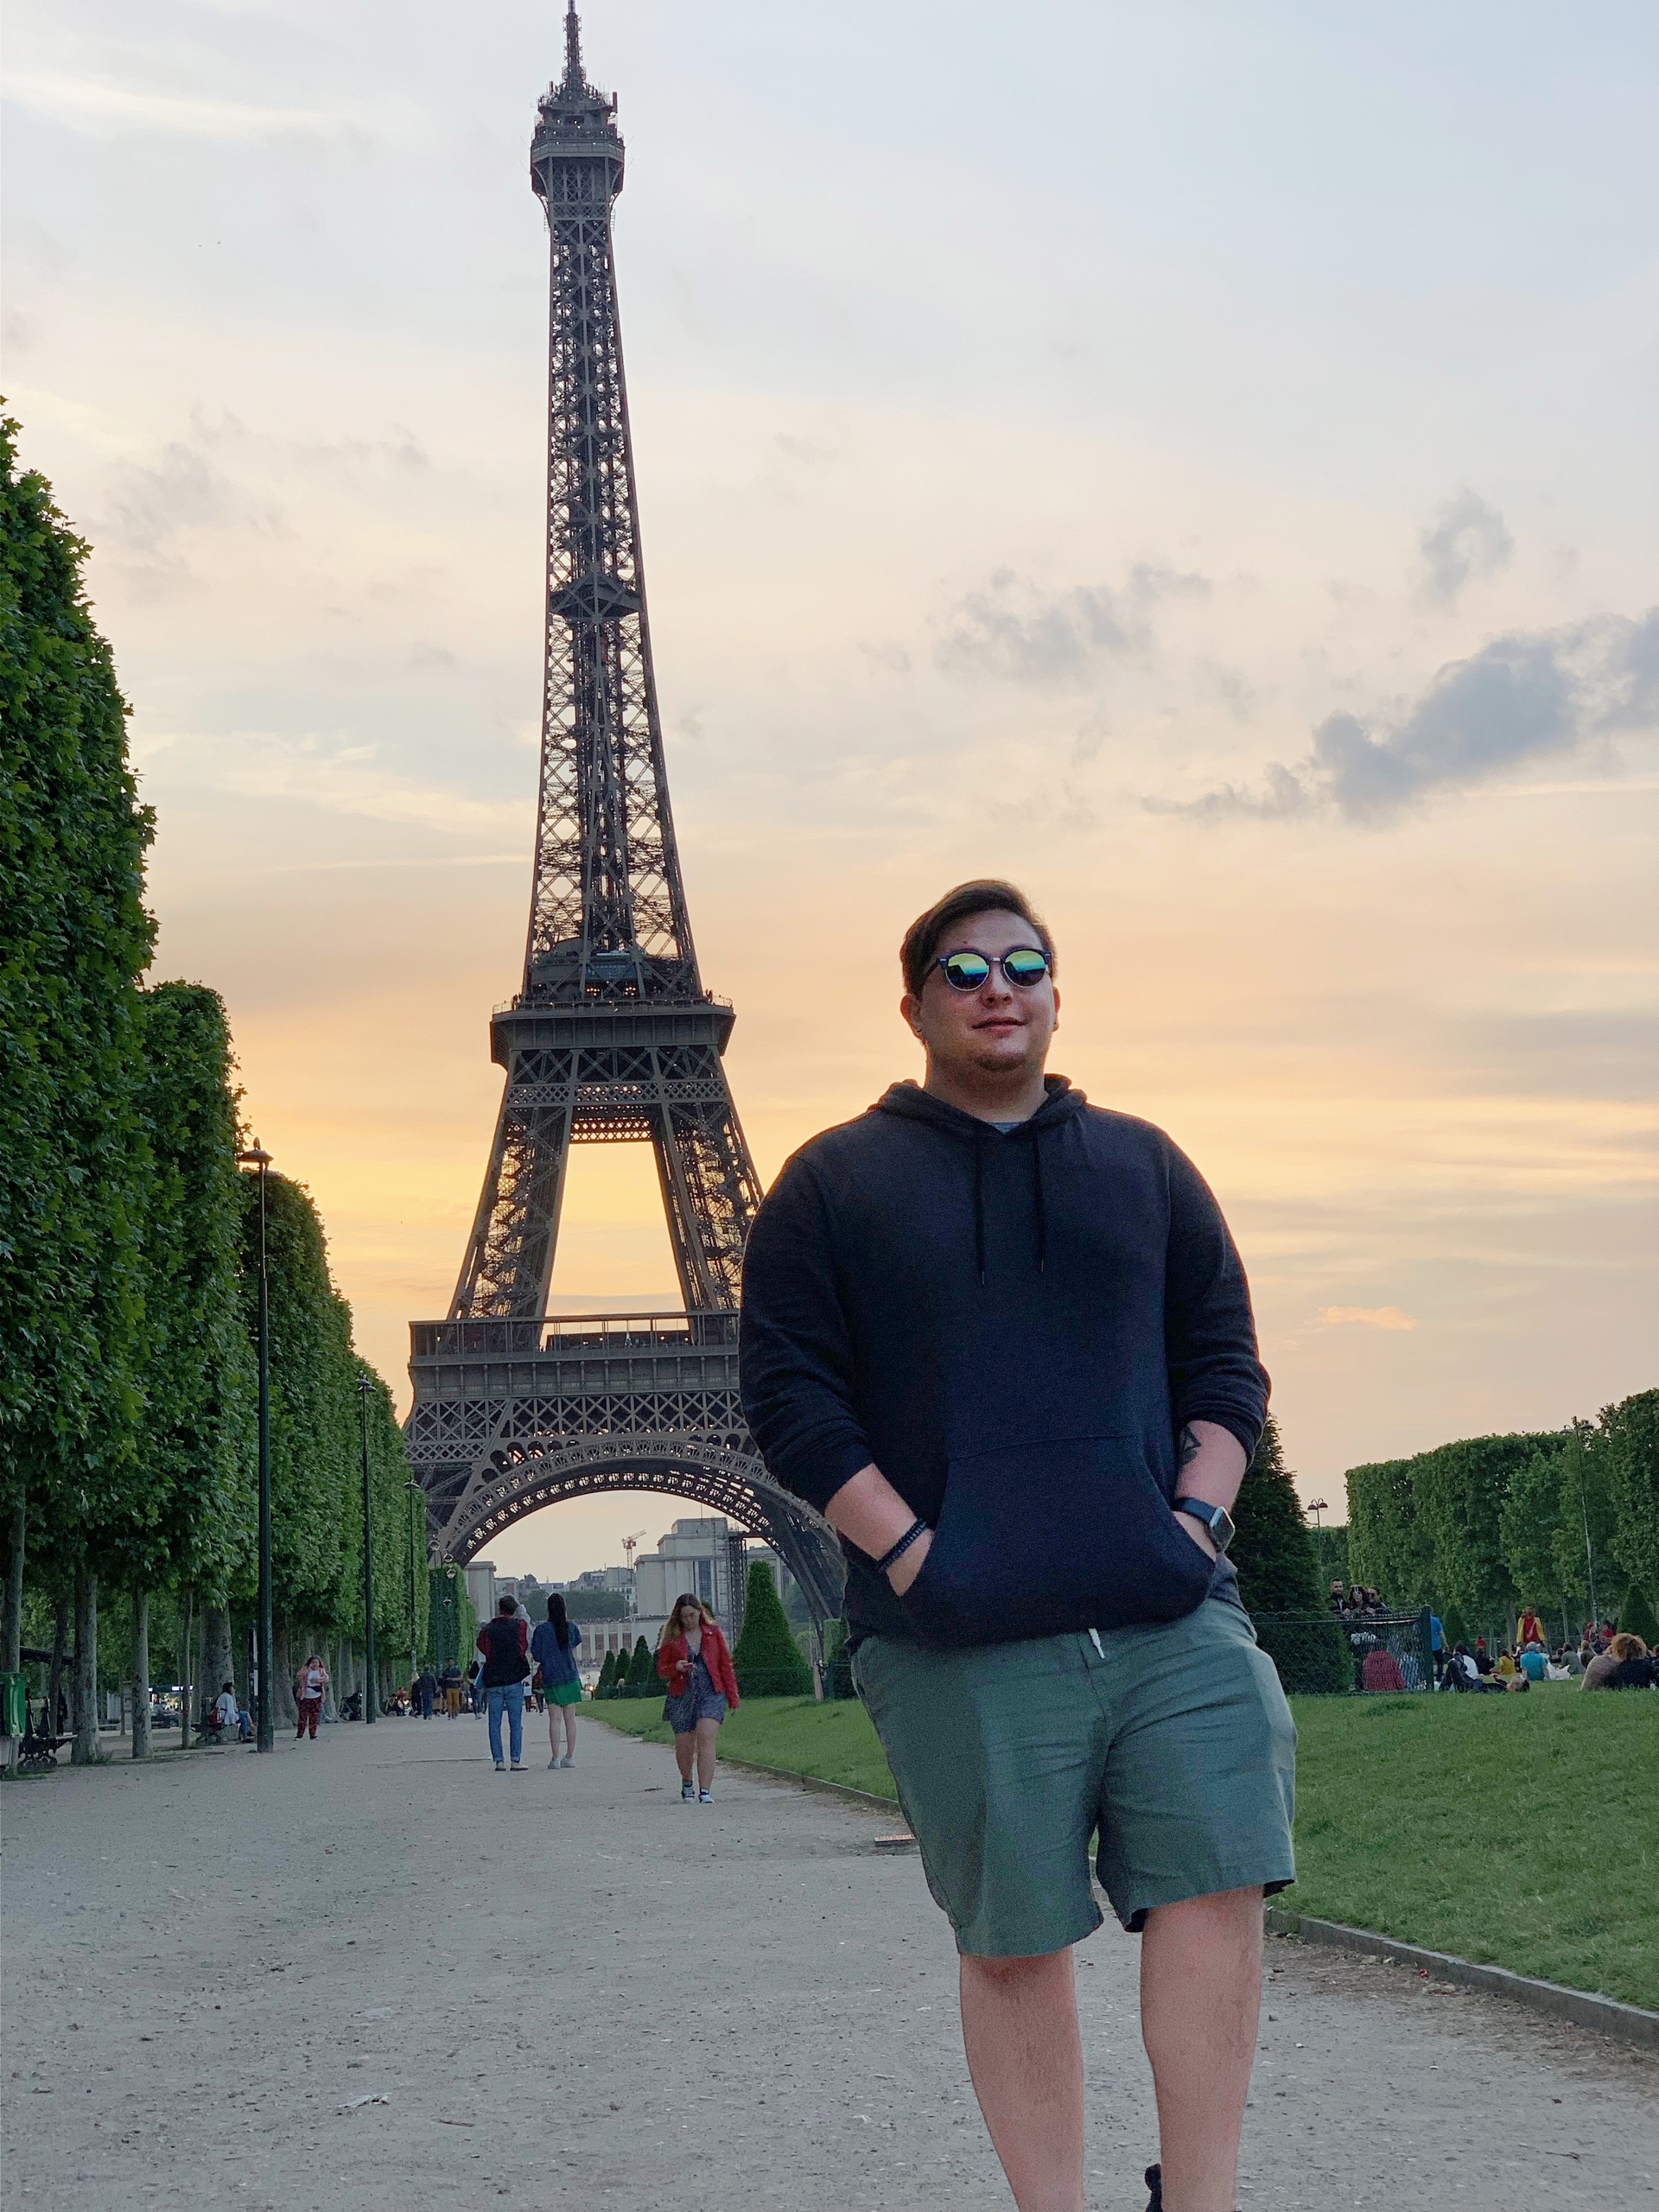 Morales in front of the Eiffel Tower.